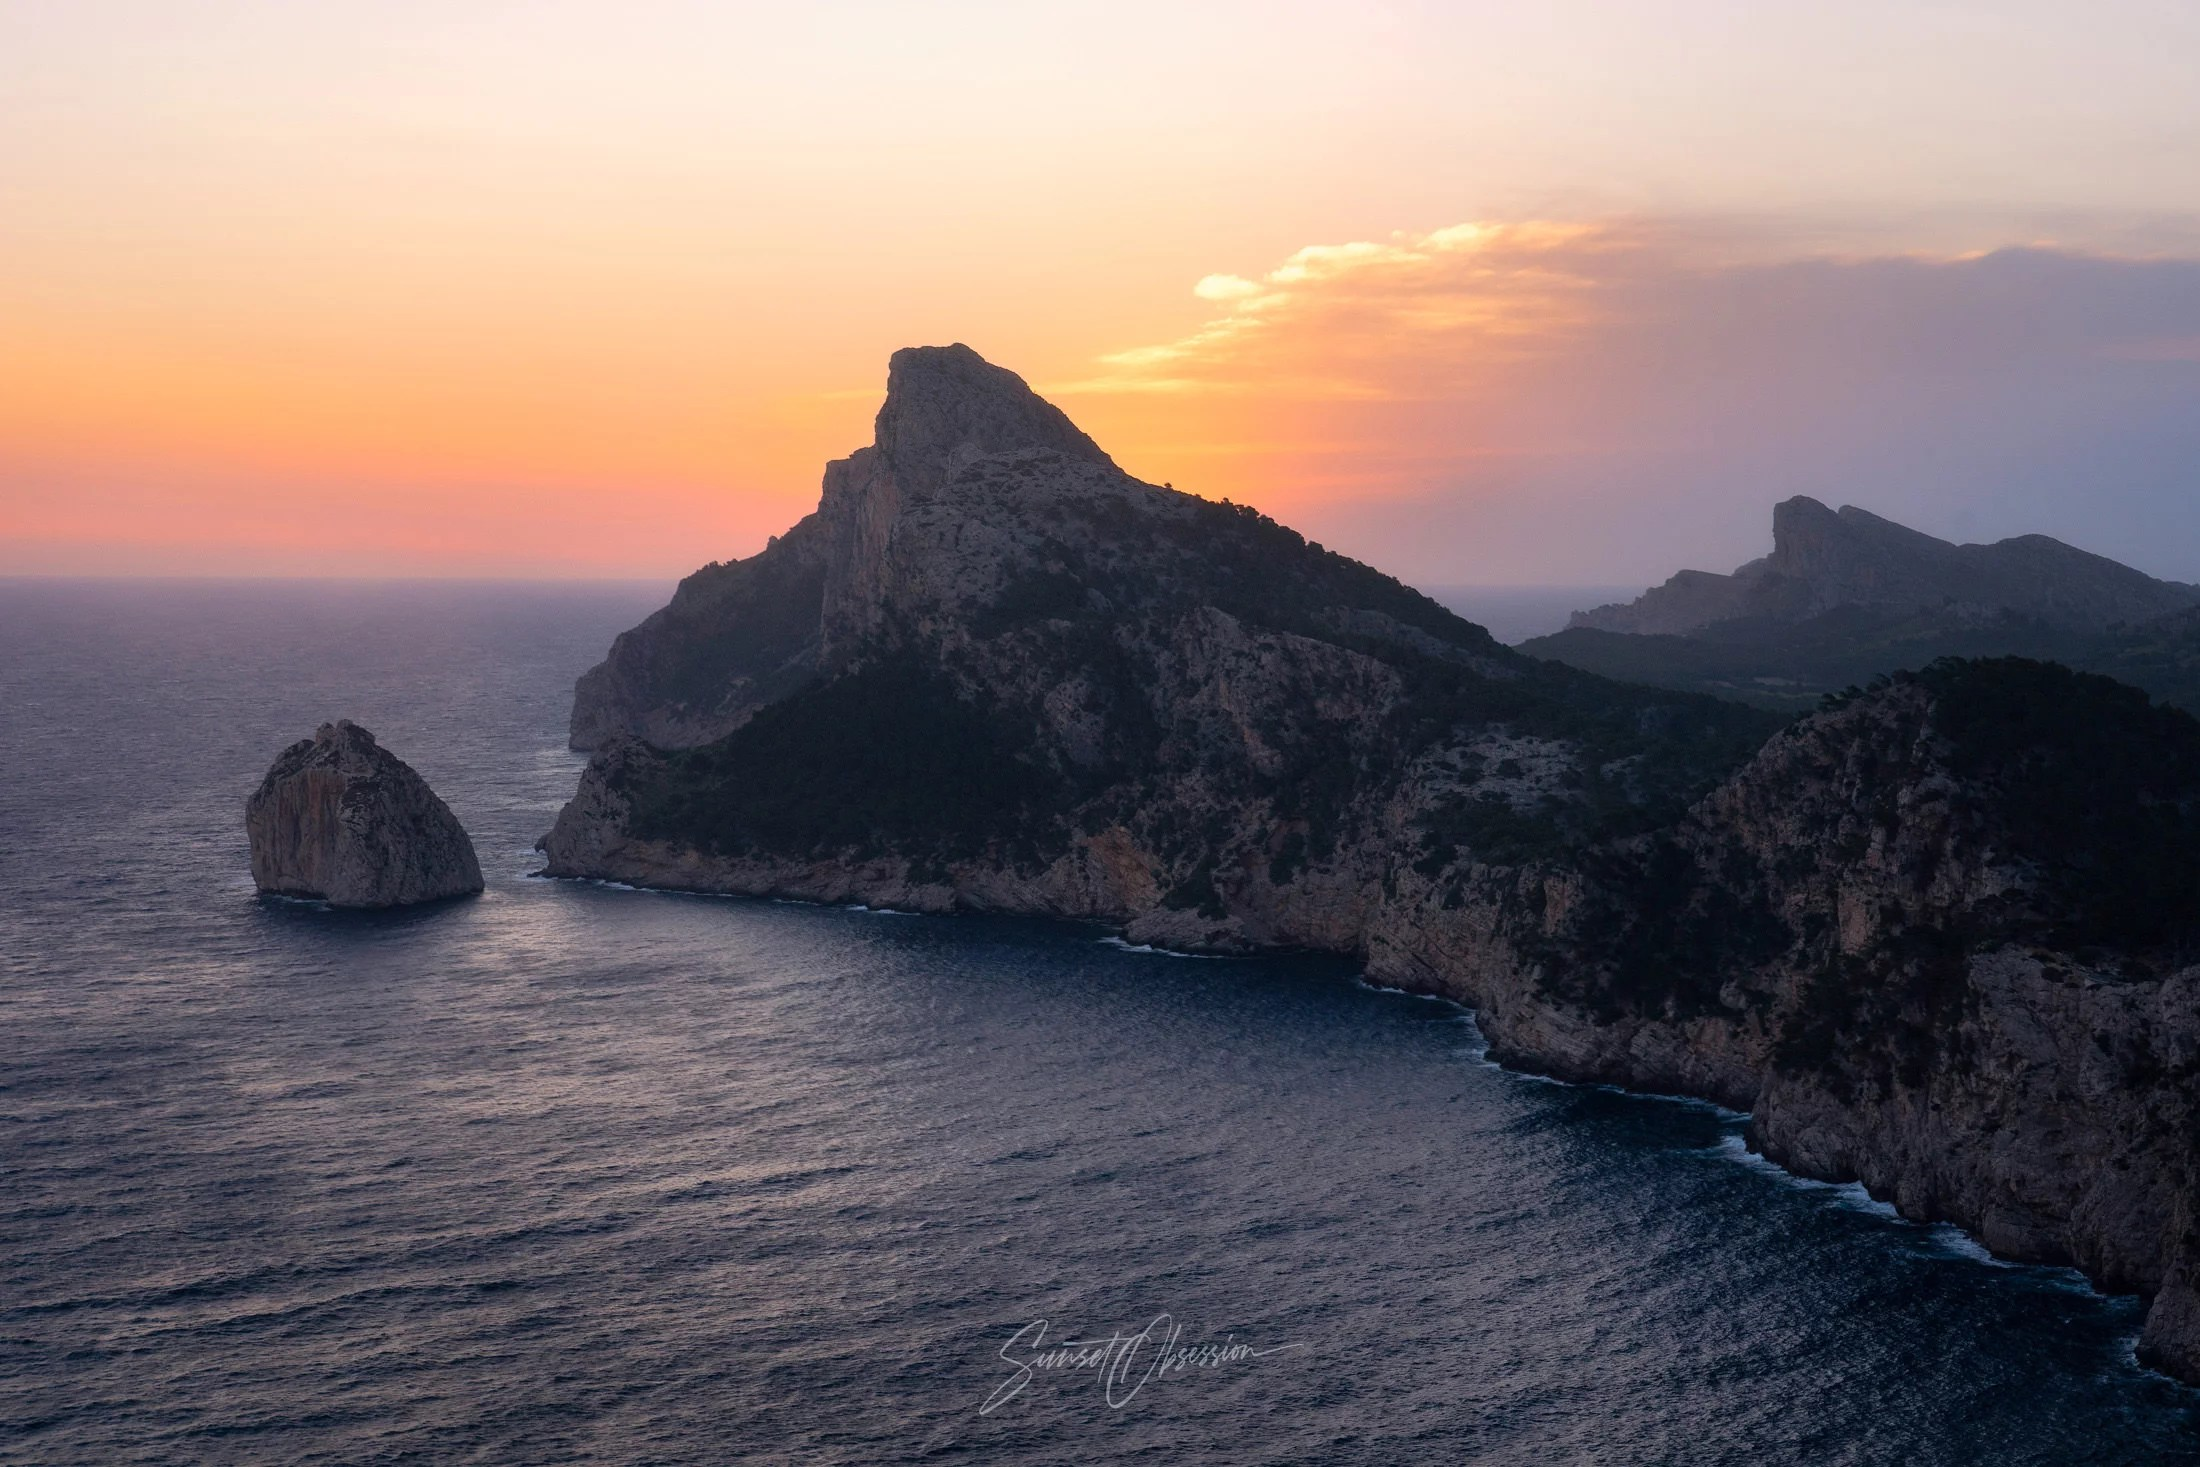 Cap de Formentor is one of the best sunrise photo spots on Mallorca, Spain